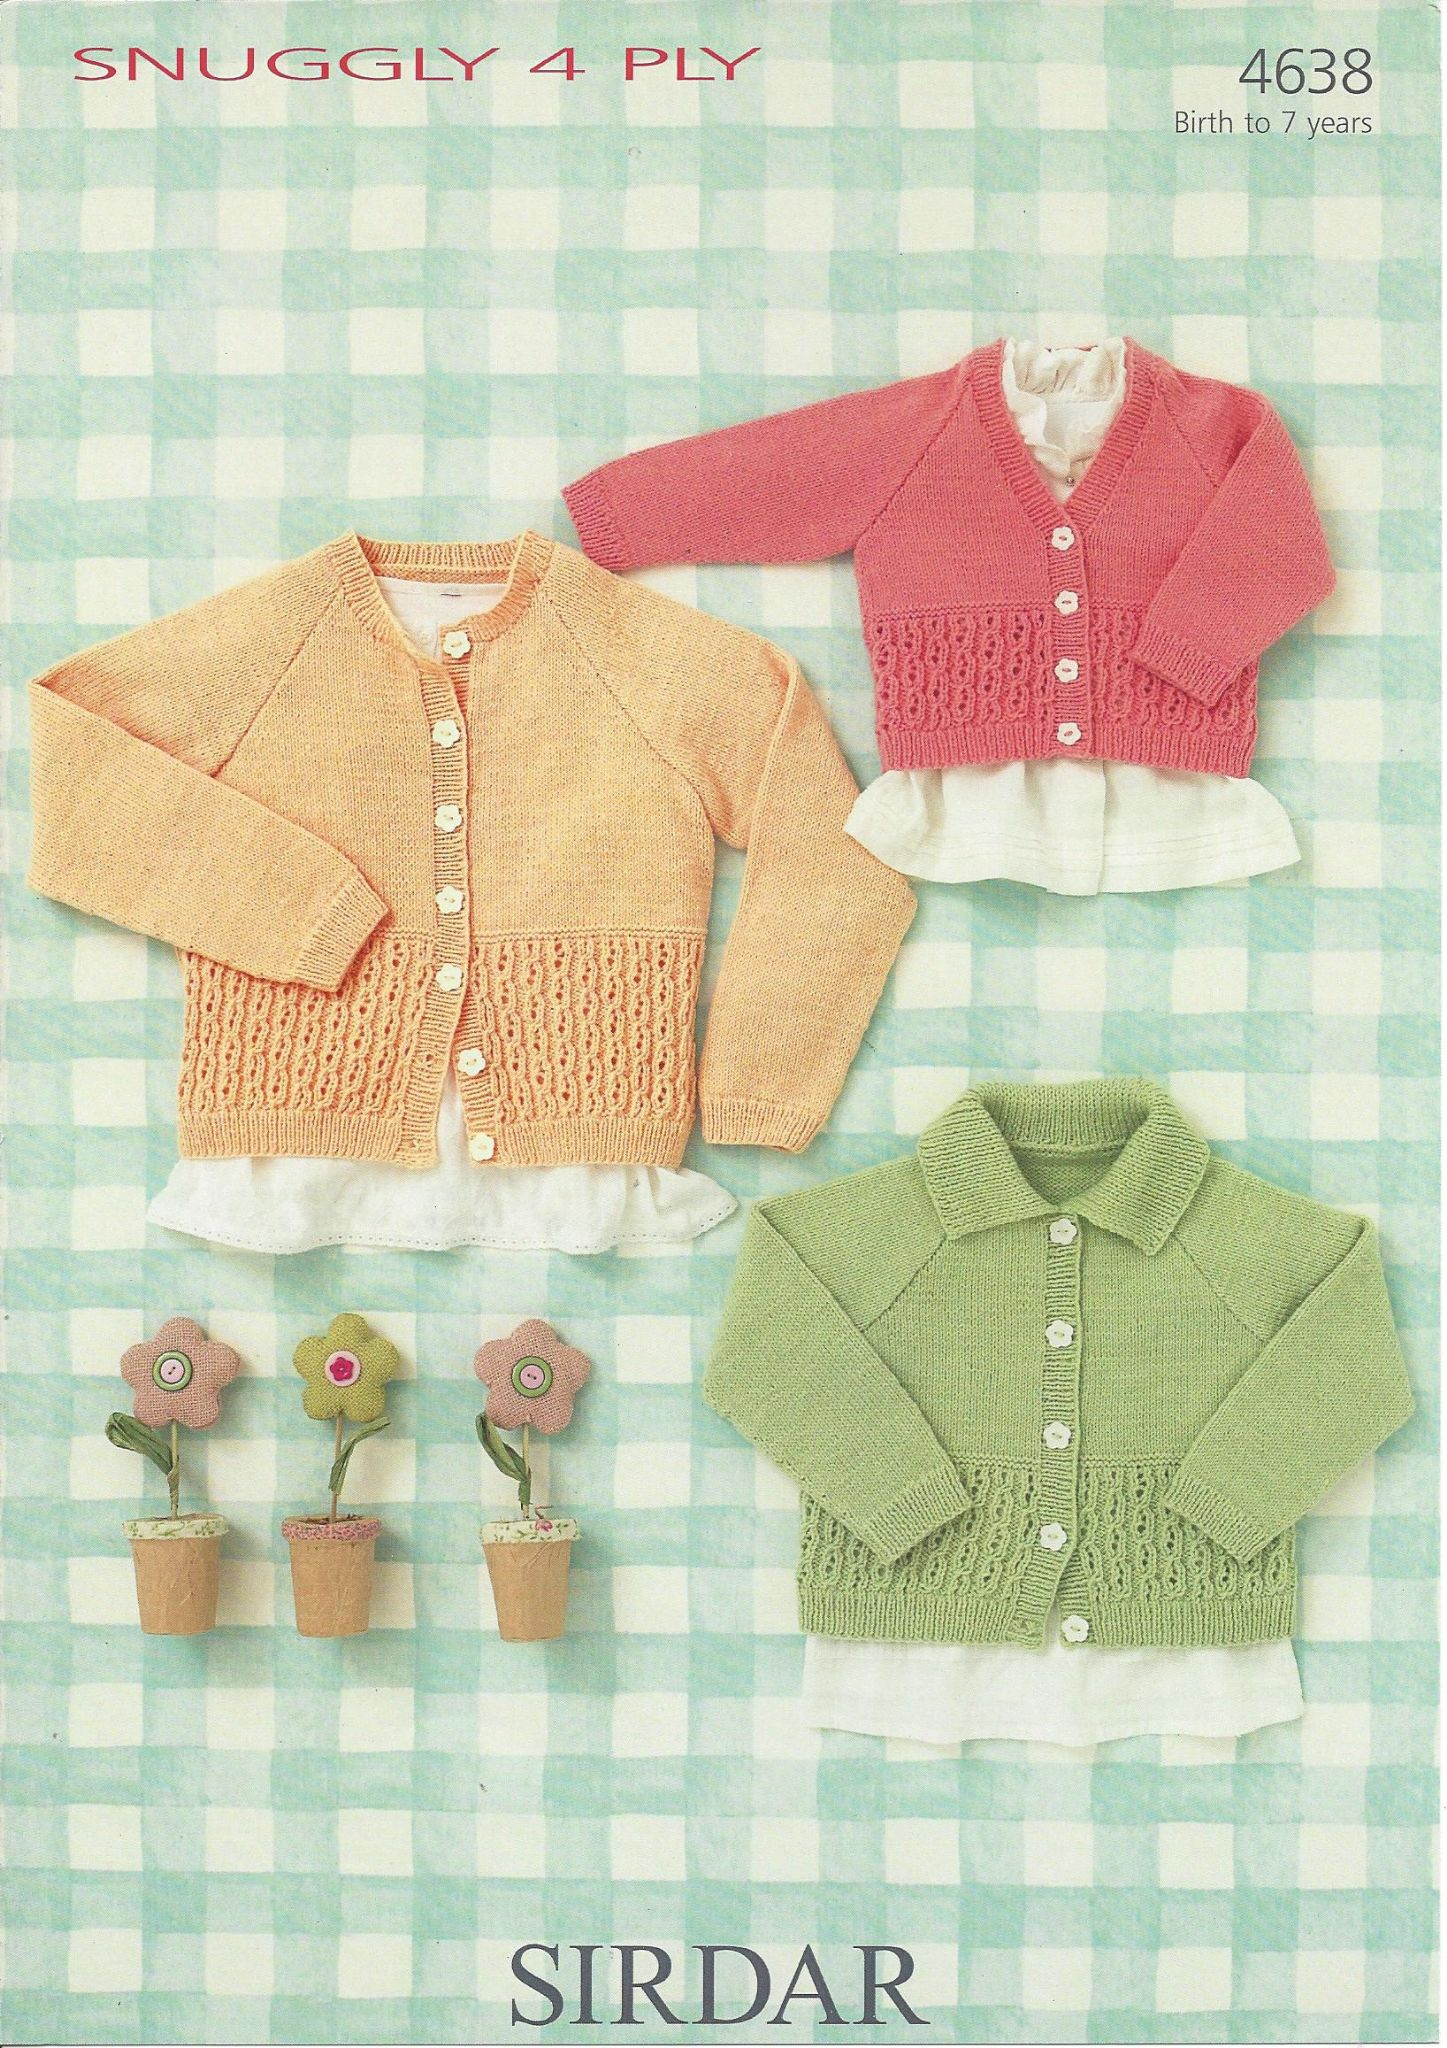 Machine Knitting Patterns For Babies : Sirdar Snuggly 4ply - 4638 Cardigans Knitting Pattern